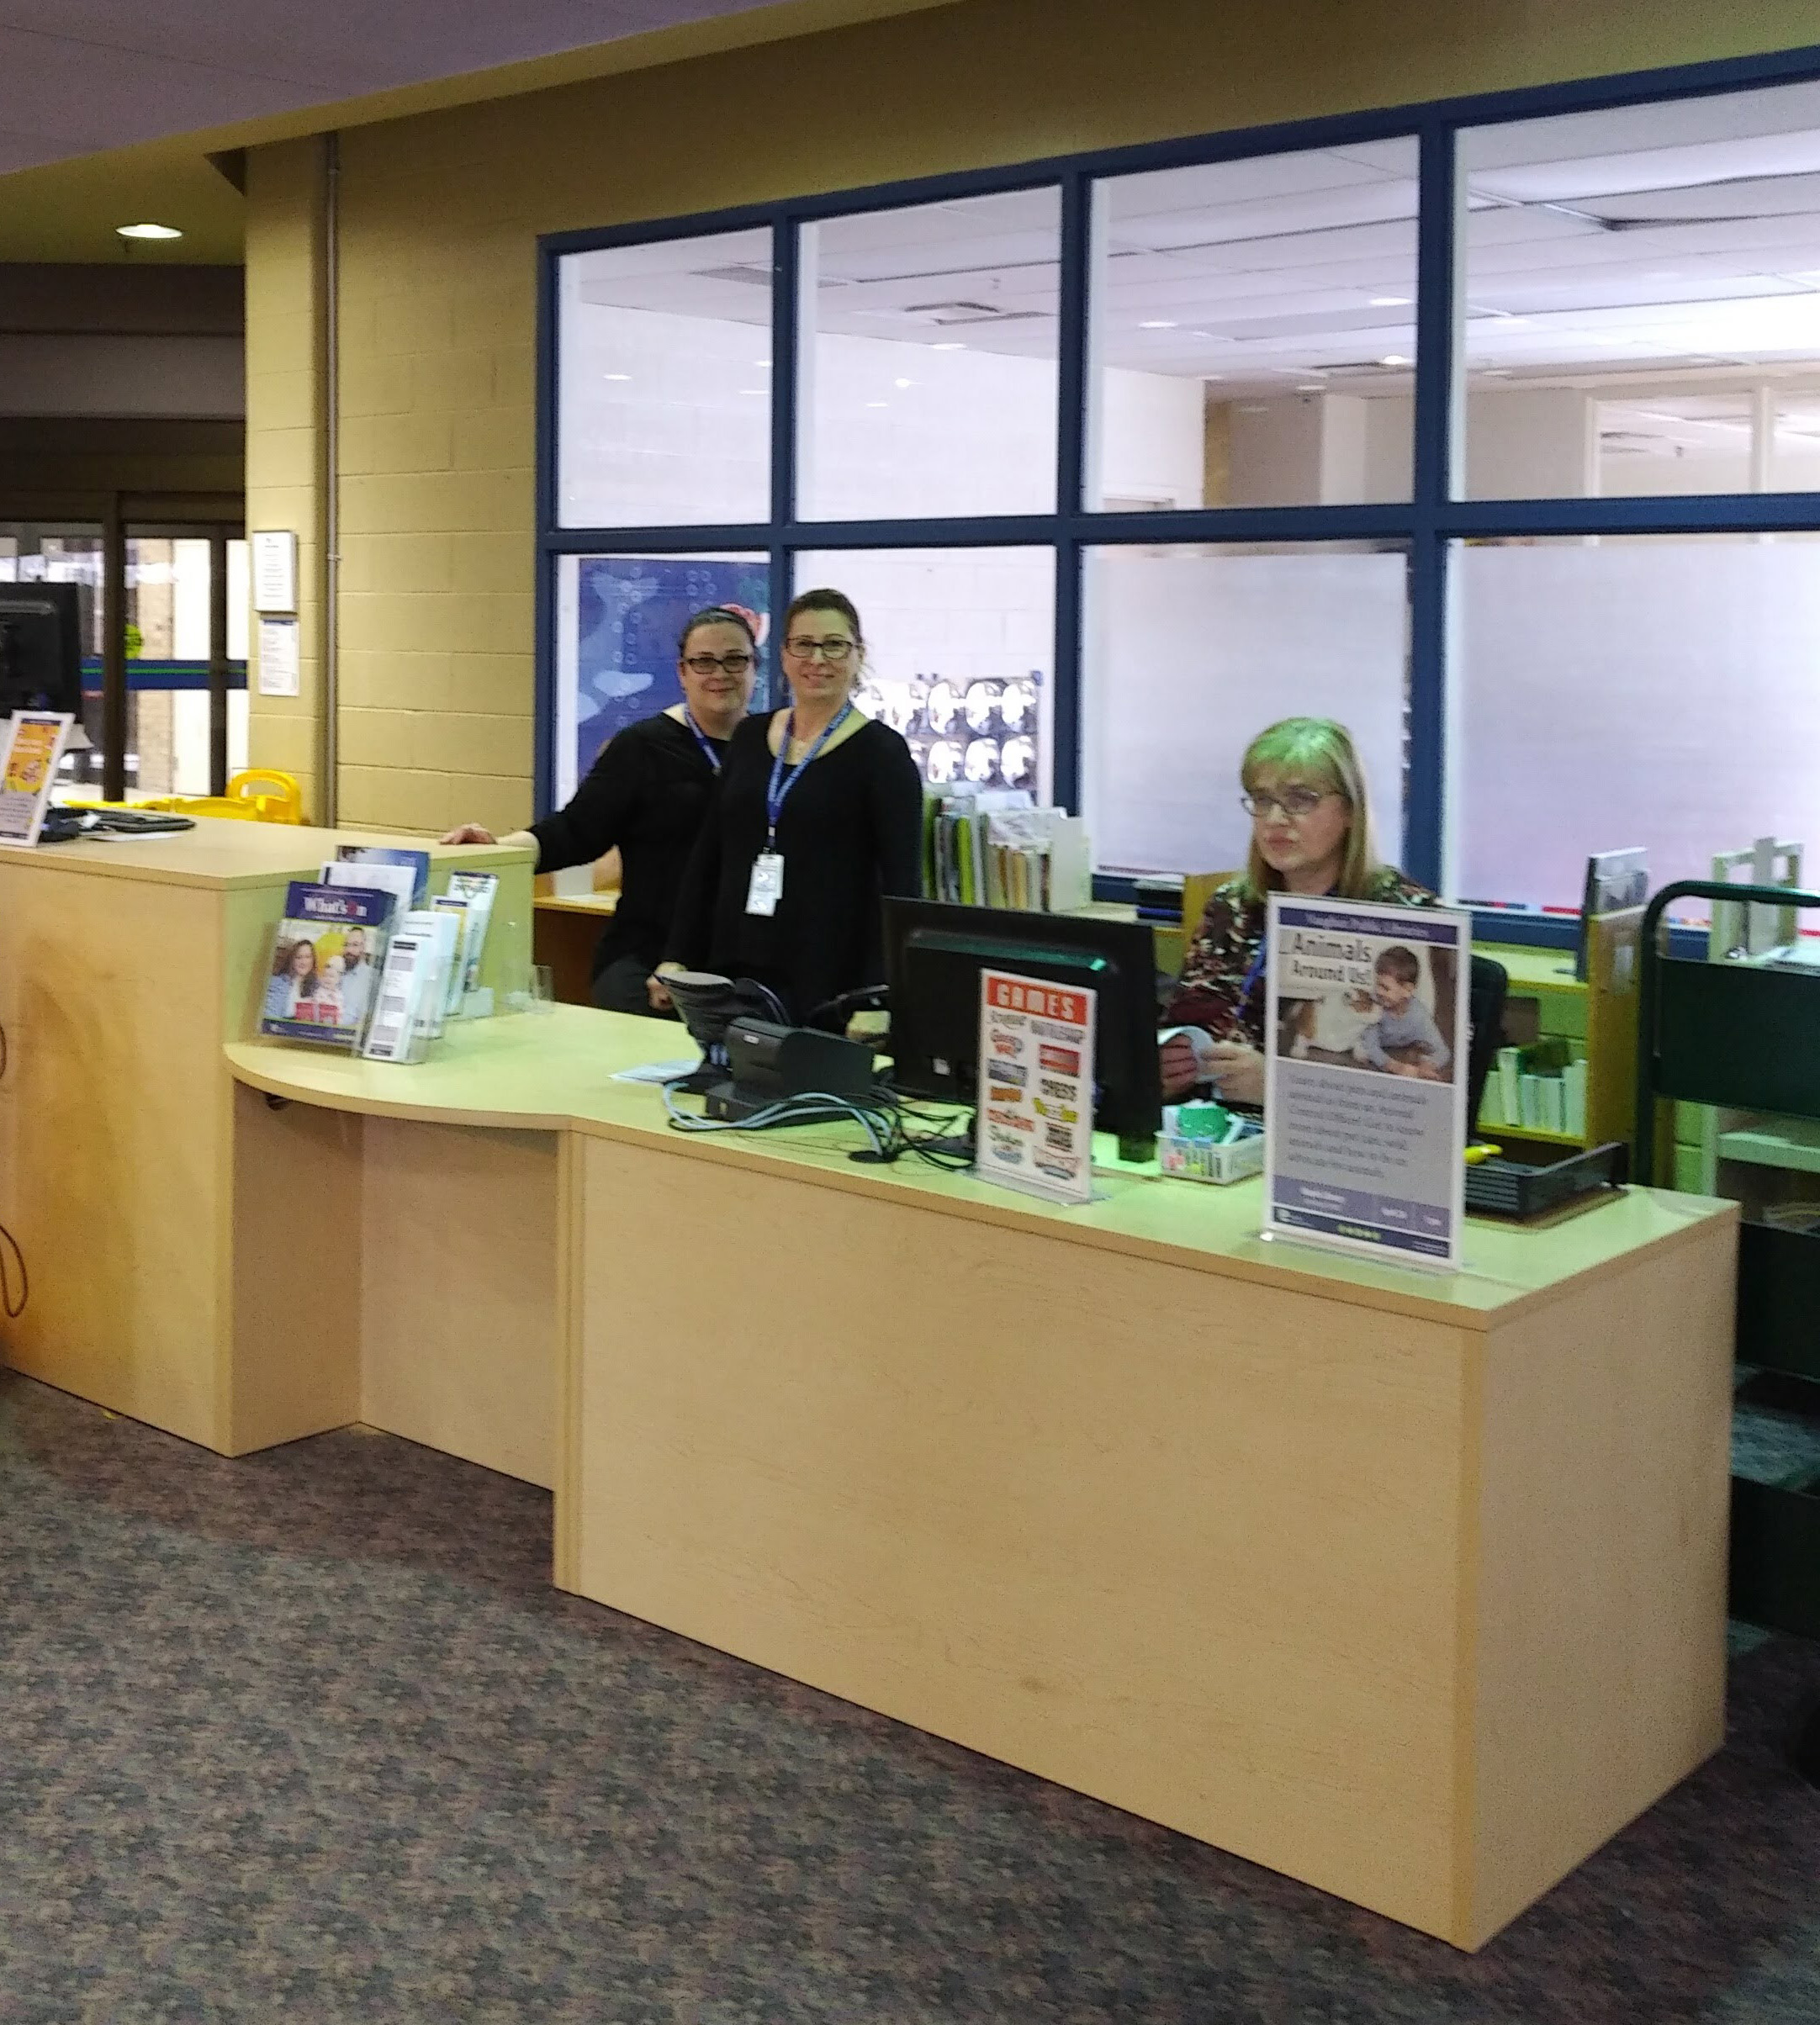 New Service Desk at Maple Library